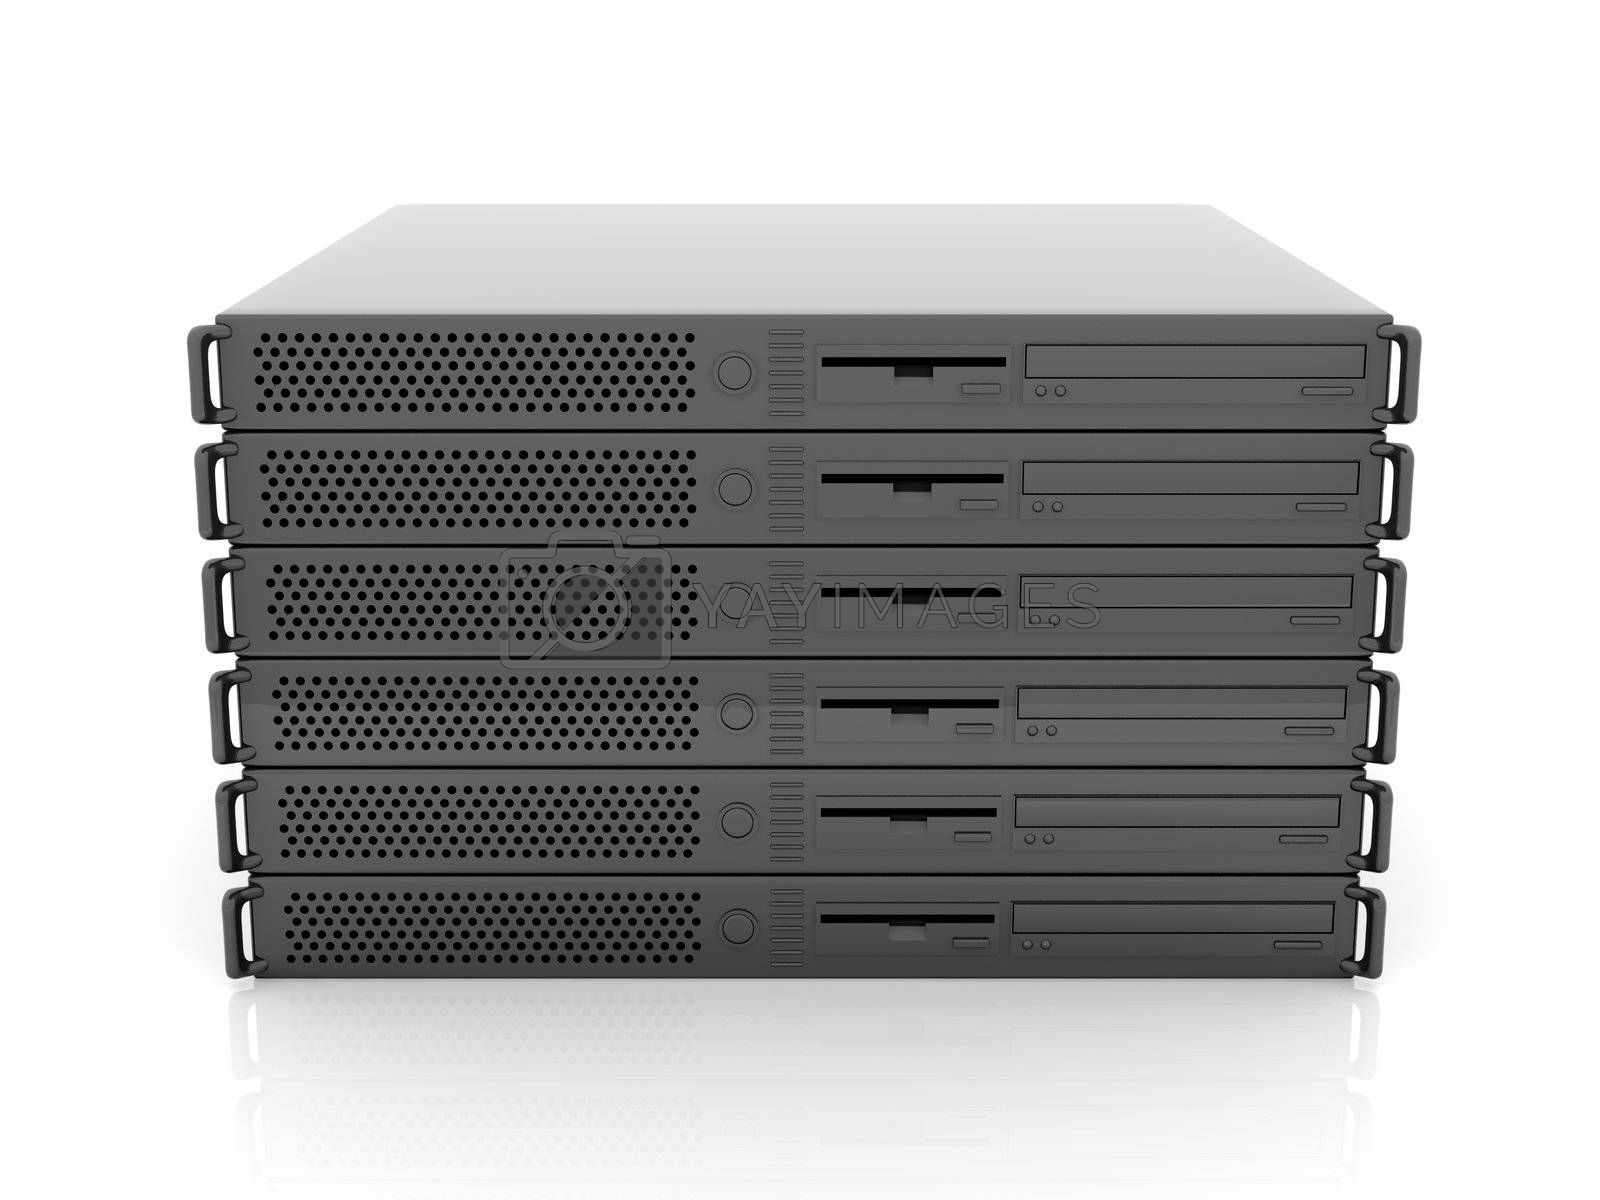 19inch Server Stack 19inch Server Stack by Spectral